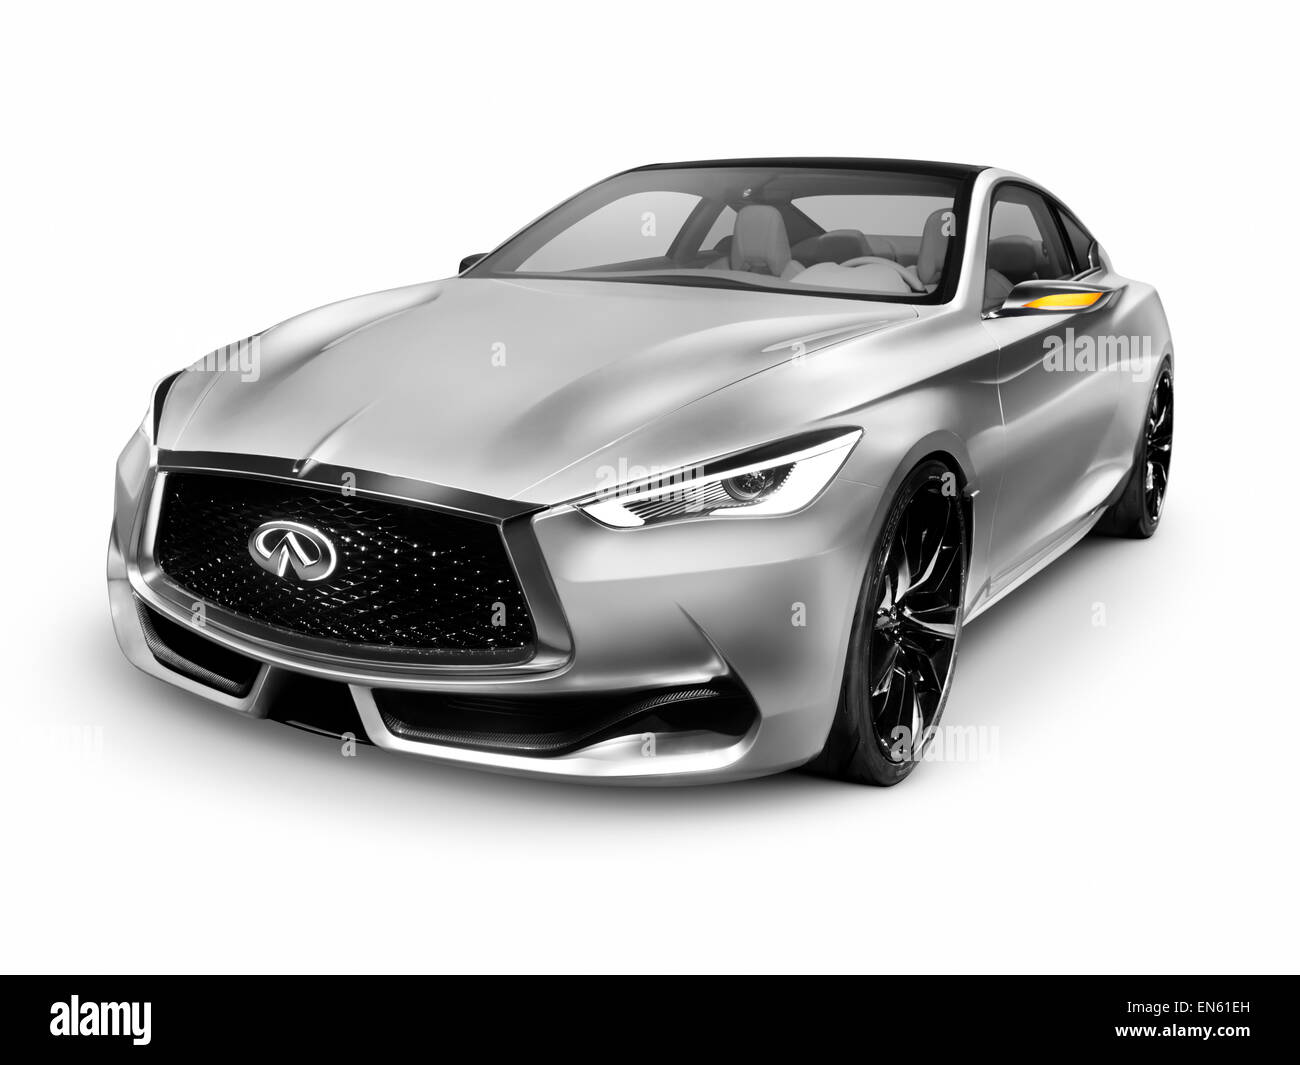 Silver 2015 Infiniti Q60 Coupe Luxury Car Isolated On White Stock